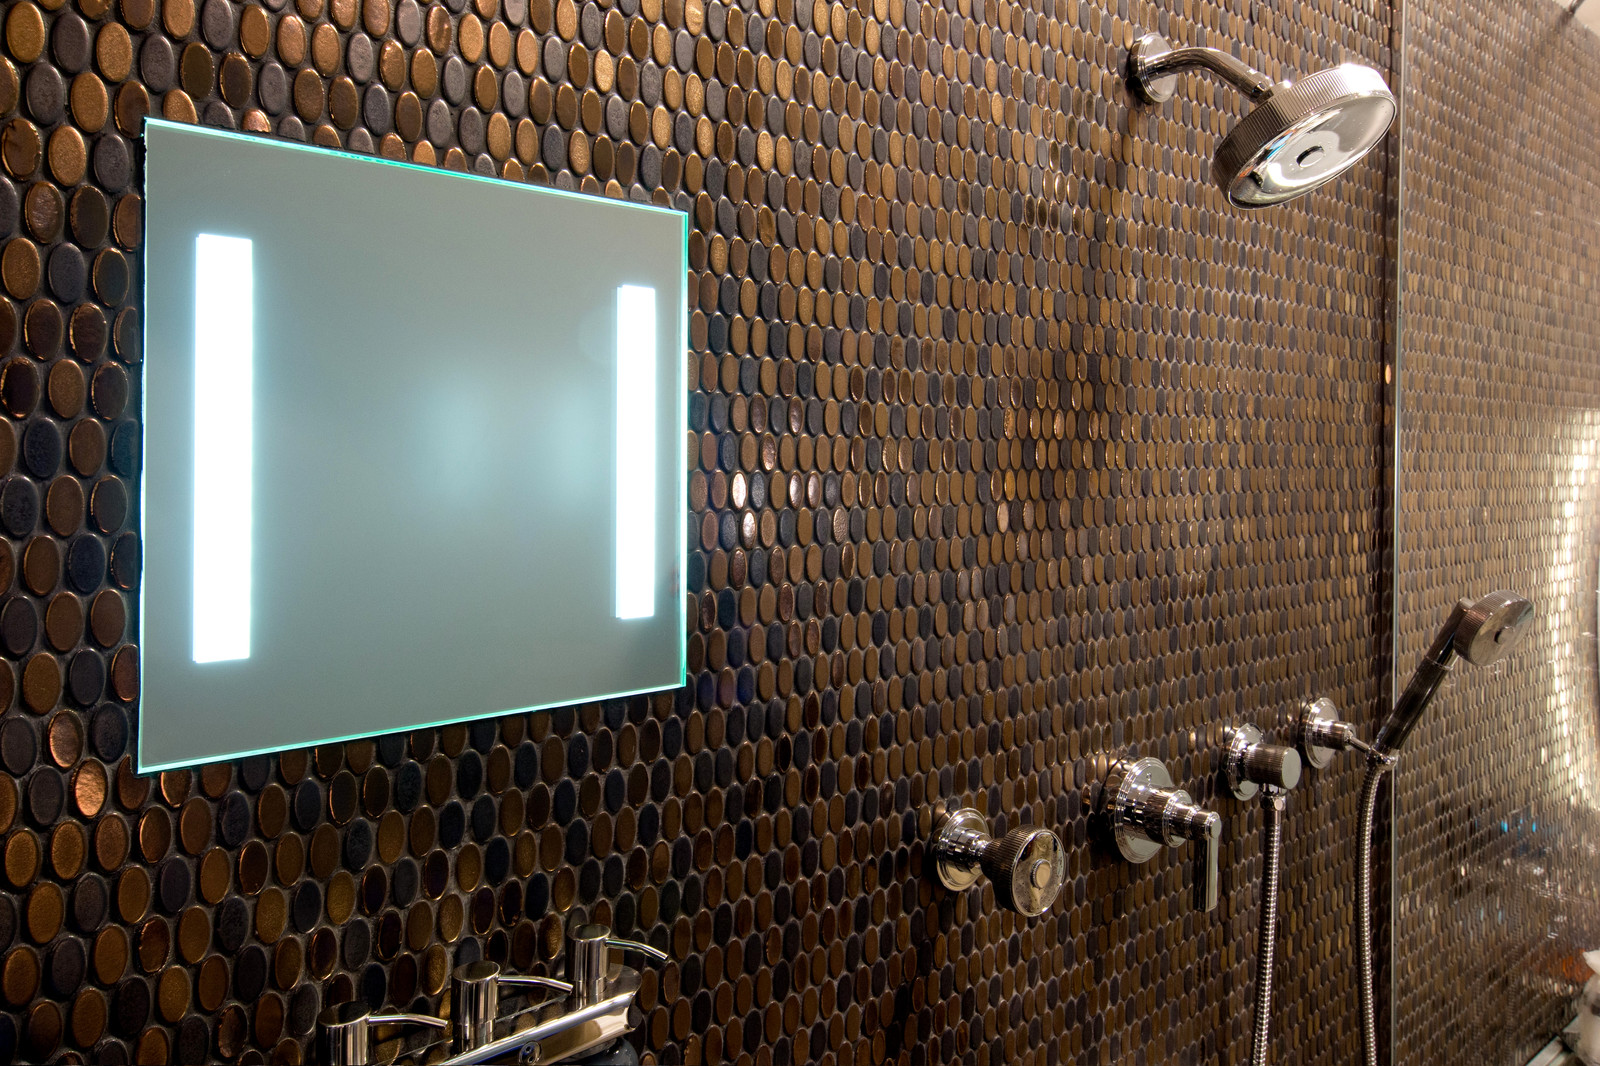 Clearmirror Usa Heated Fog Free And Led Shower And Vanity Mirrors